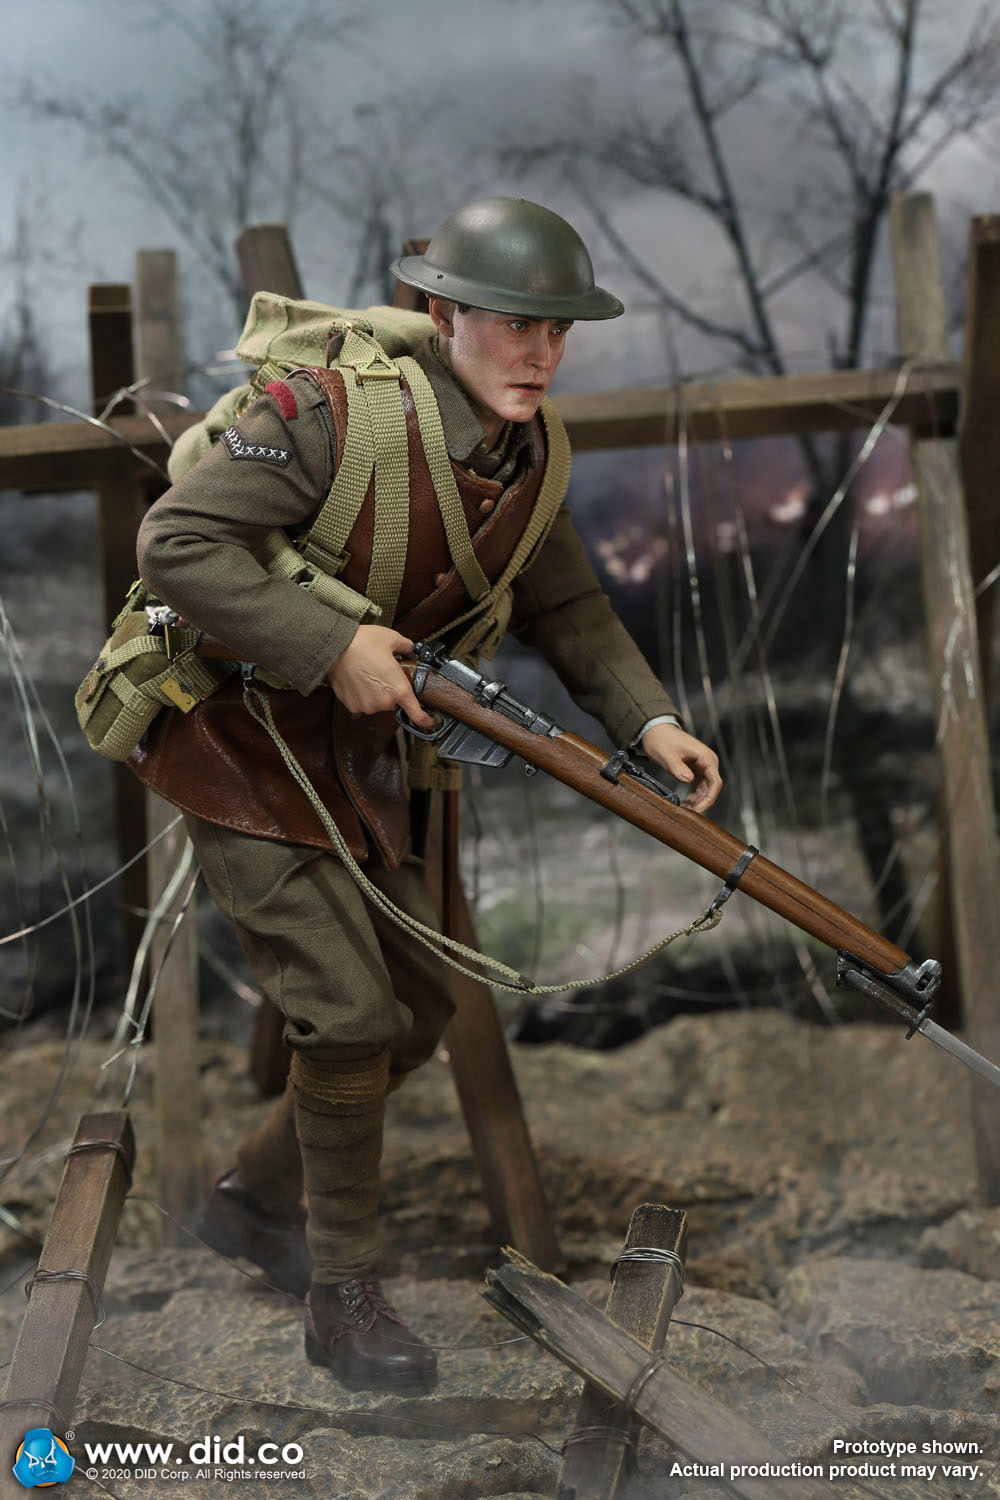 military - NEW PRODUCT: DiD: B11011 WWI British Infantry Lance Corporal William & Trench Diorama Set (UPDATED INFORMATION) E3b81010